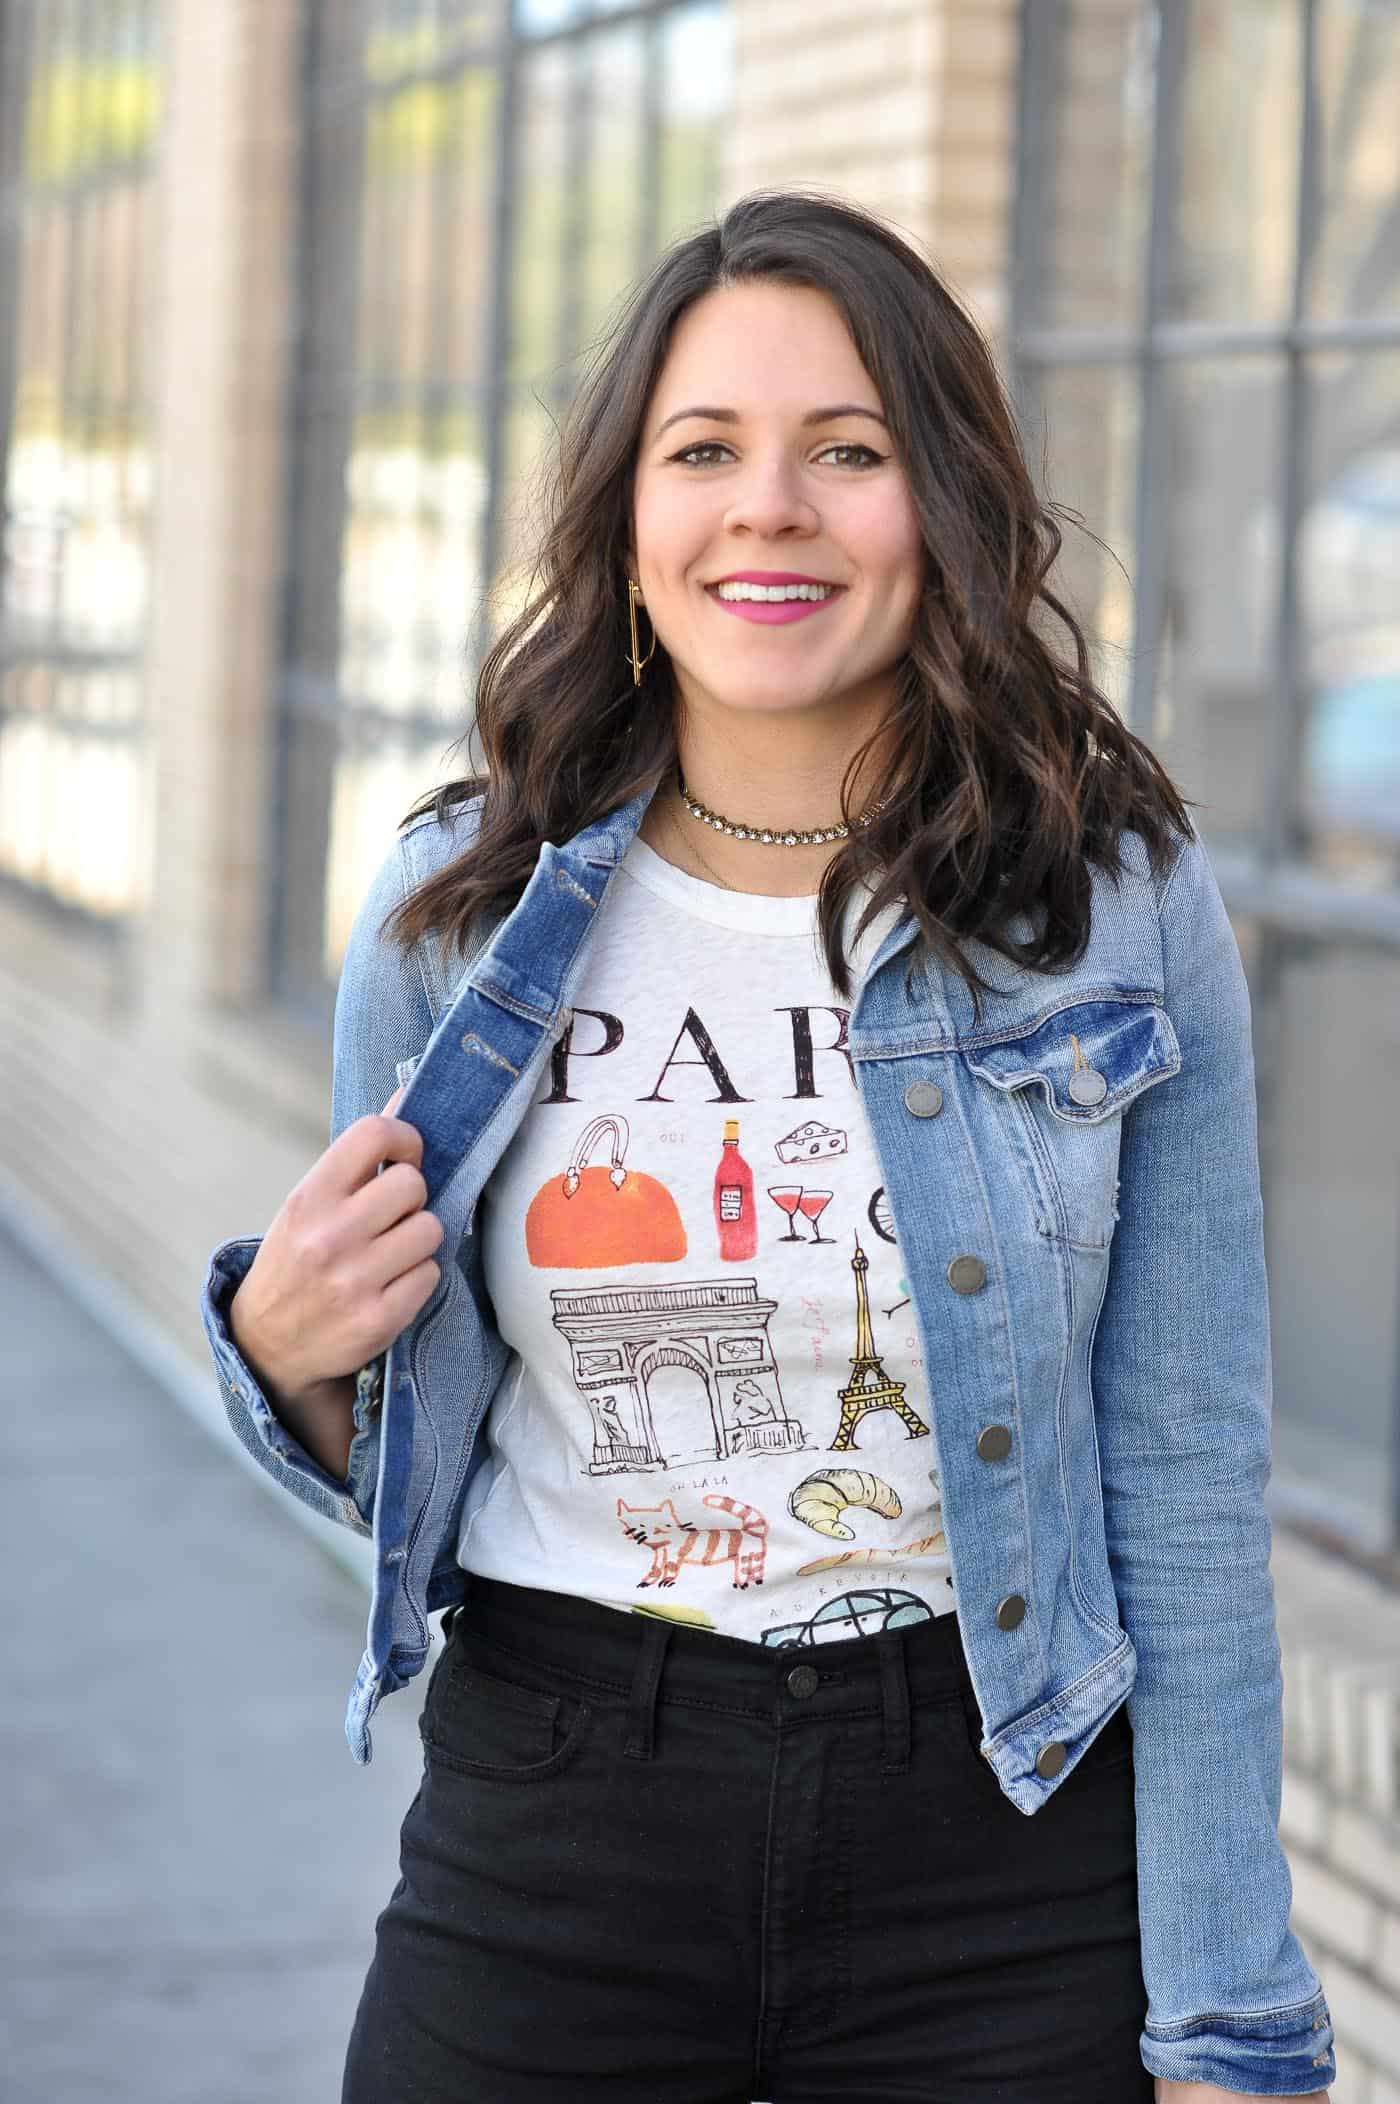 Paris graphic tee - My Style Vita @mystylevita